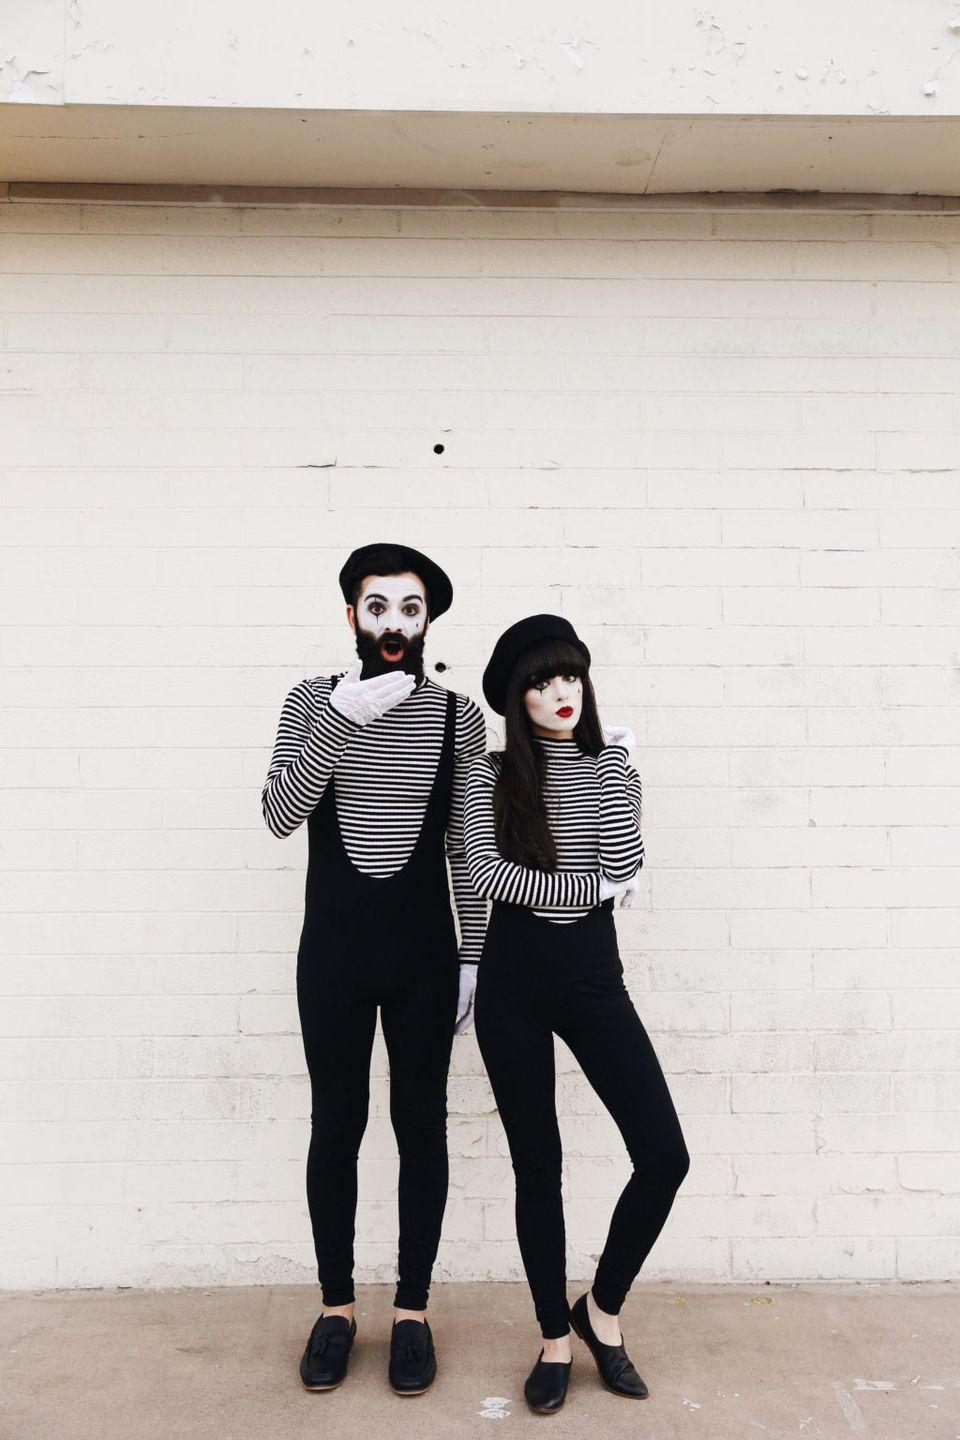 """<p>All you need is a striped shirt, black jumpsuit, and beret for an excuse to give your partner the silent treatment all night long. (Just kidding! 😉) </p><p><strong>See more at <a href=""""http://newdarlings.com/2016/10/halloween-halloween-halloween/"""" rel=""""nofollow noopener"""" target=""""_blank"""" data-ylk=""""slk:New Darlings"""" class=""""link rapid-noclick-resp"""">New Darlings</a>. </strong></p><p><a class=""""link rapid-noclick-resp"""" href=""""https://www.amazon.com/Kangaroo-Wool-Black-Beret-Hat/dp/B00SUMGC5M?tag=syn-yahoo-20&ascsubtag=%5Bartid%7C10050.g.29402076%5Bsrc%7Cyahoo-us"""" rel=""""nofollow noopener"""" target=""""_blank"""" data-ylk=""""slk:SHOP BLACK BERETS"""">SHOP BLACK BERETS</a></p>"""